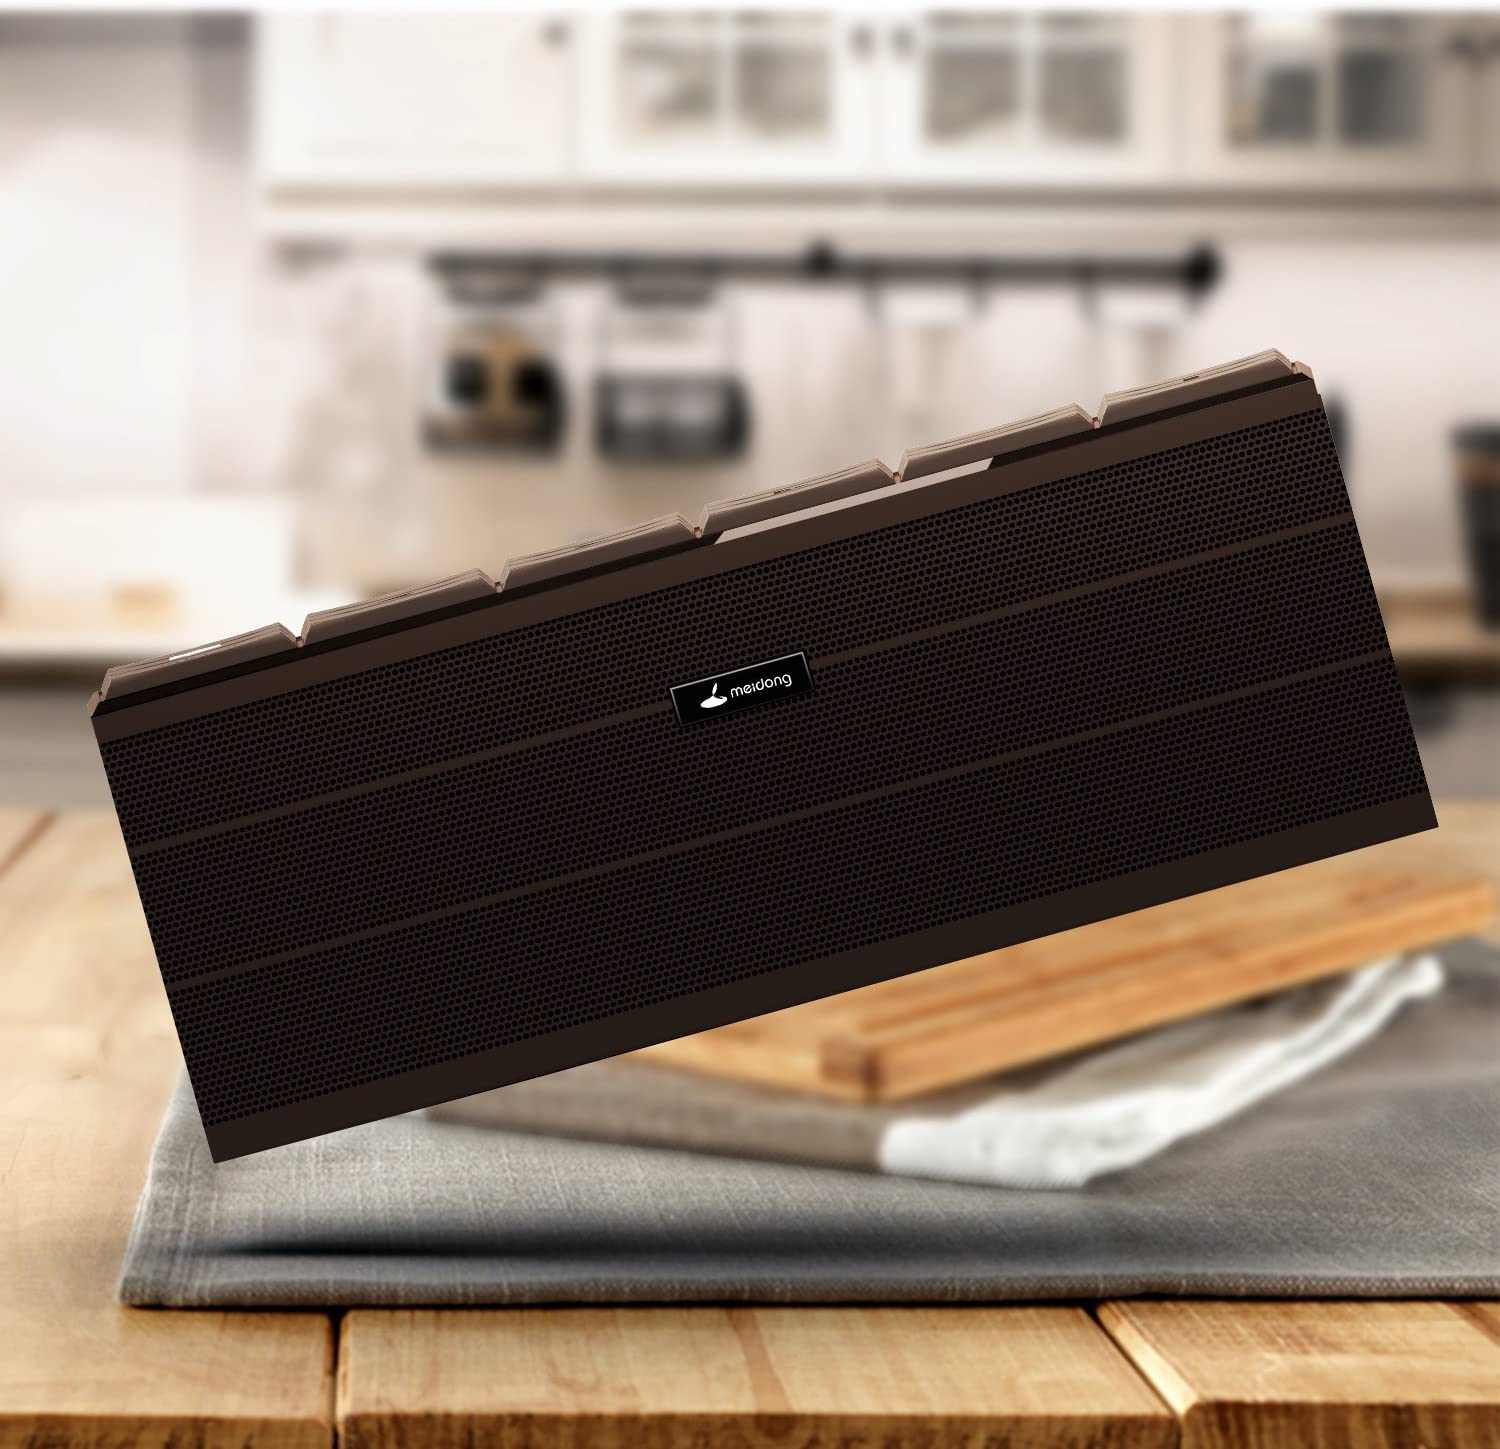 Hands-Free Function Bluetooth V4.0 NFC Tech with Hi-Fi Stereo Sound,Strong Bass Meidong iChocolate Portable Wireless Bluetooth Speaker Large Bluetooth Speakers Build-in Microphone Support